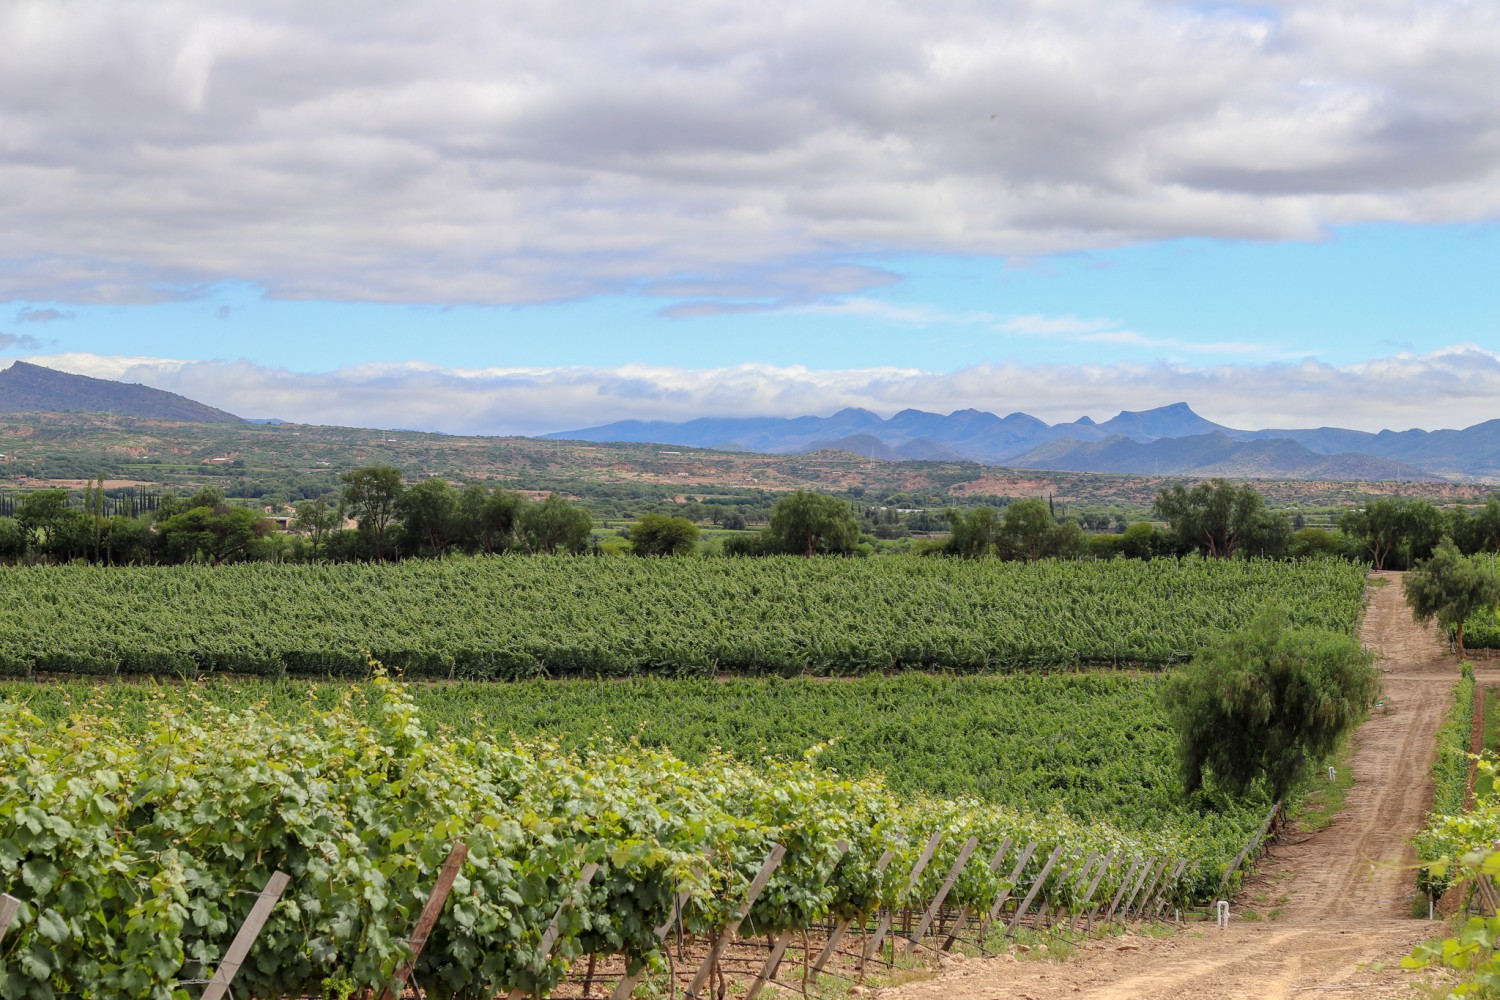 A view of the Valley of Tarija from the vineyards of Bodega Aranjuez.